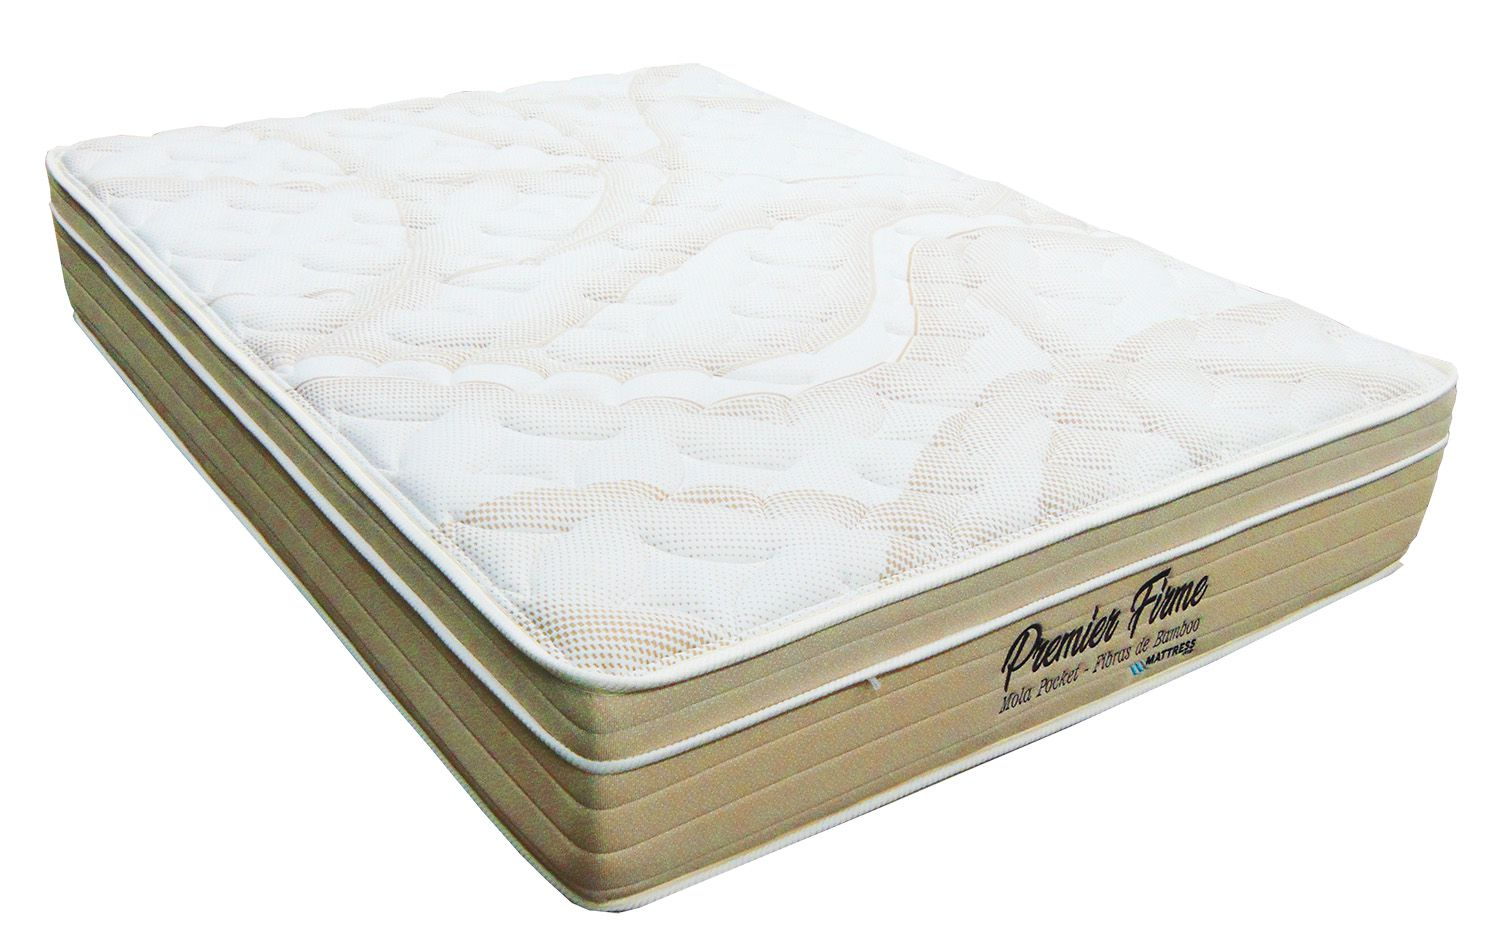 Colchão Mattress One Premier Firm Queen Size 1,58x1,98 - 29cm - Firme